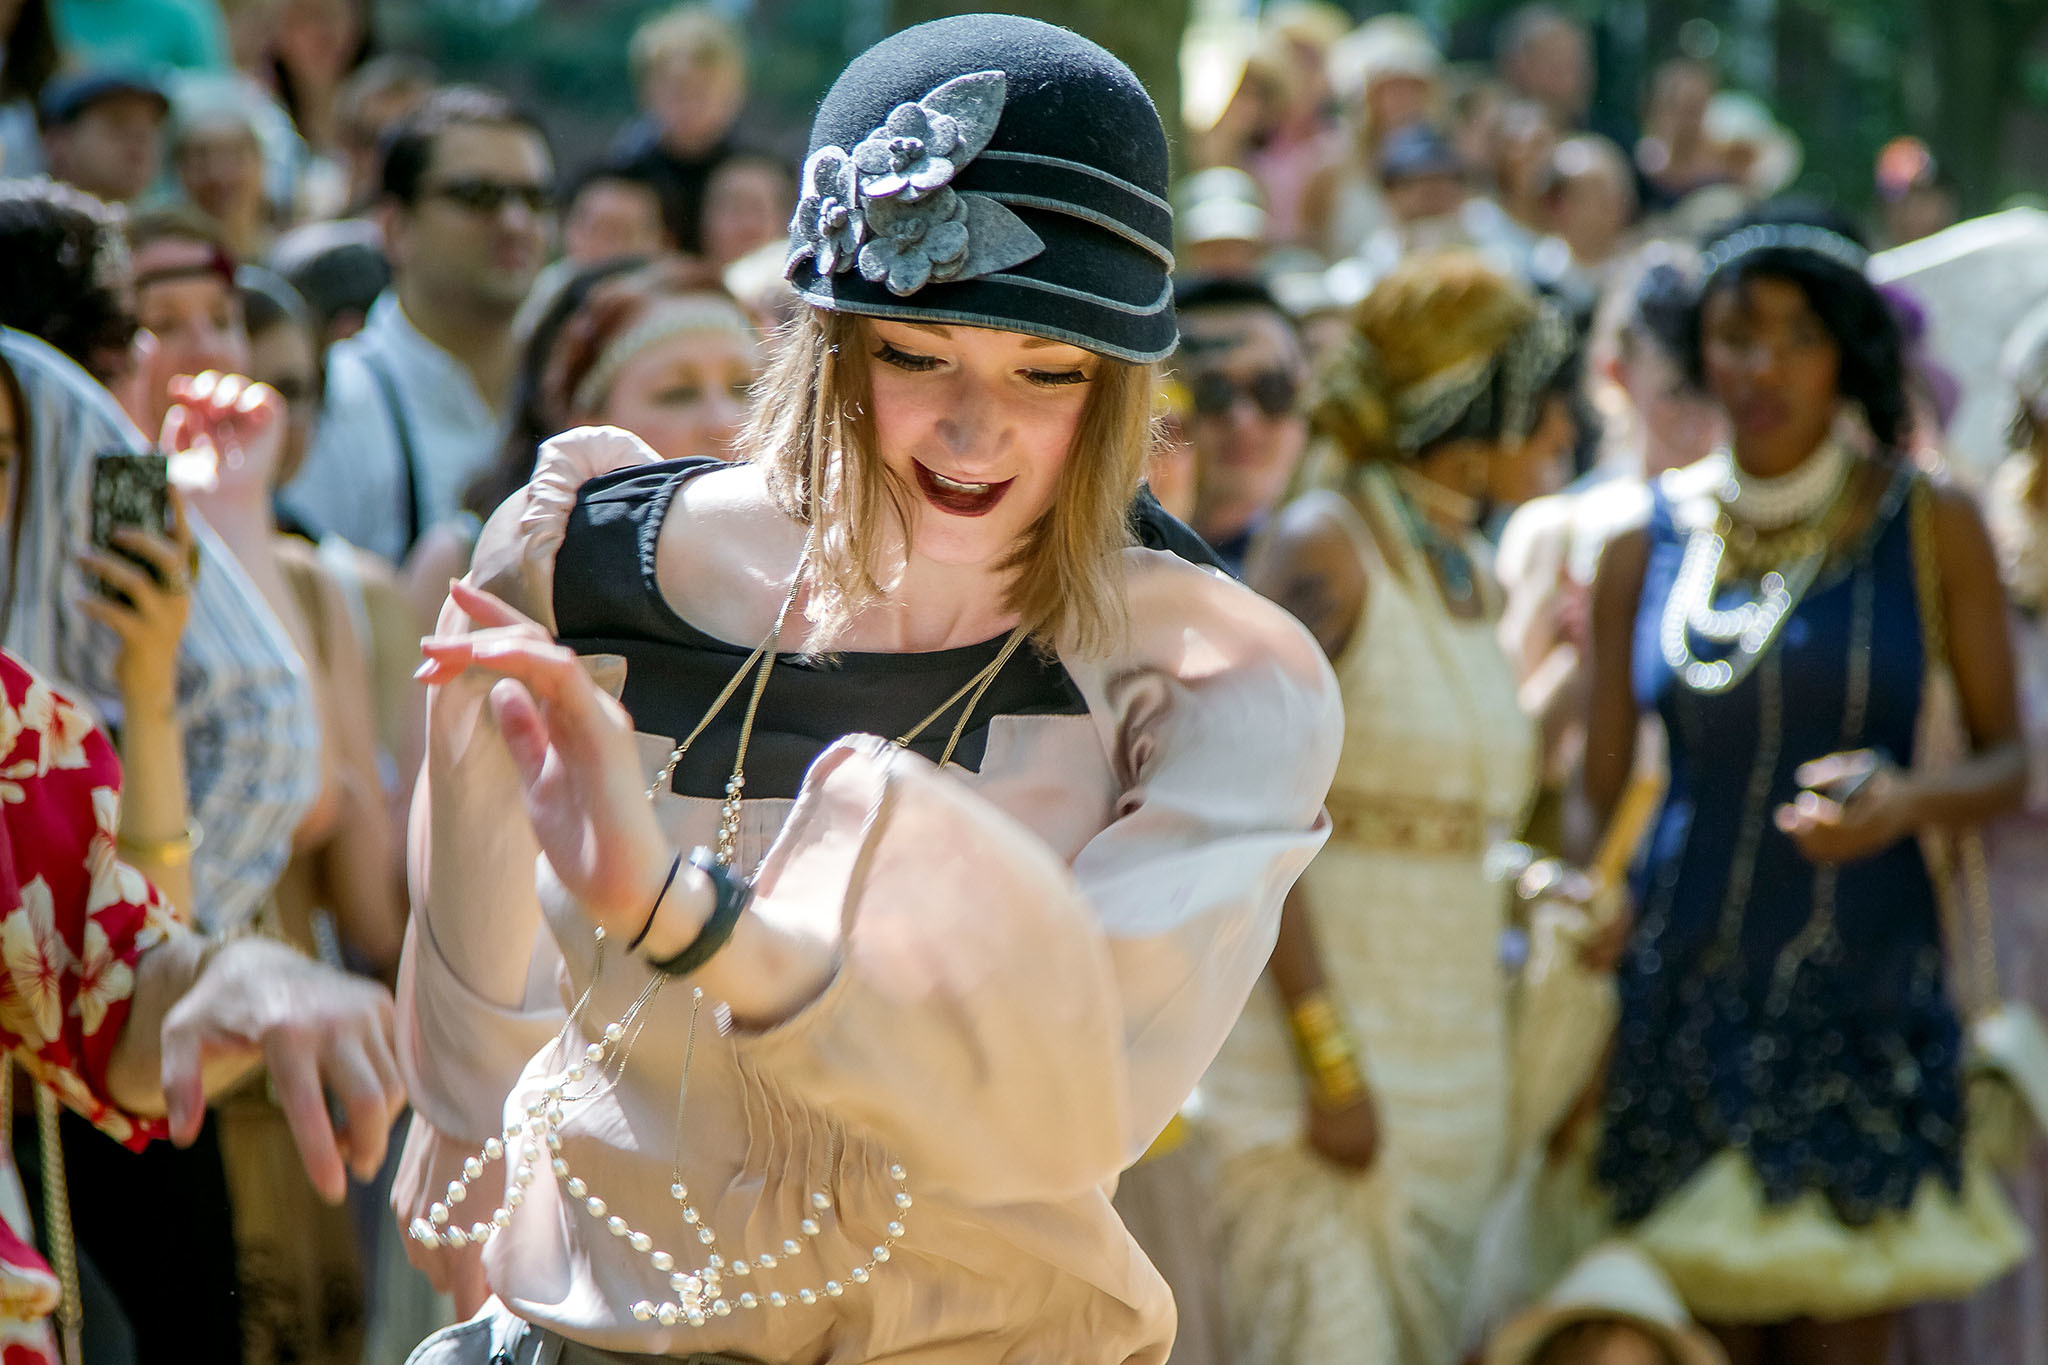 Relive the Jazz Age